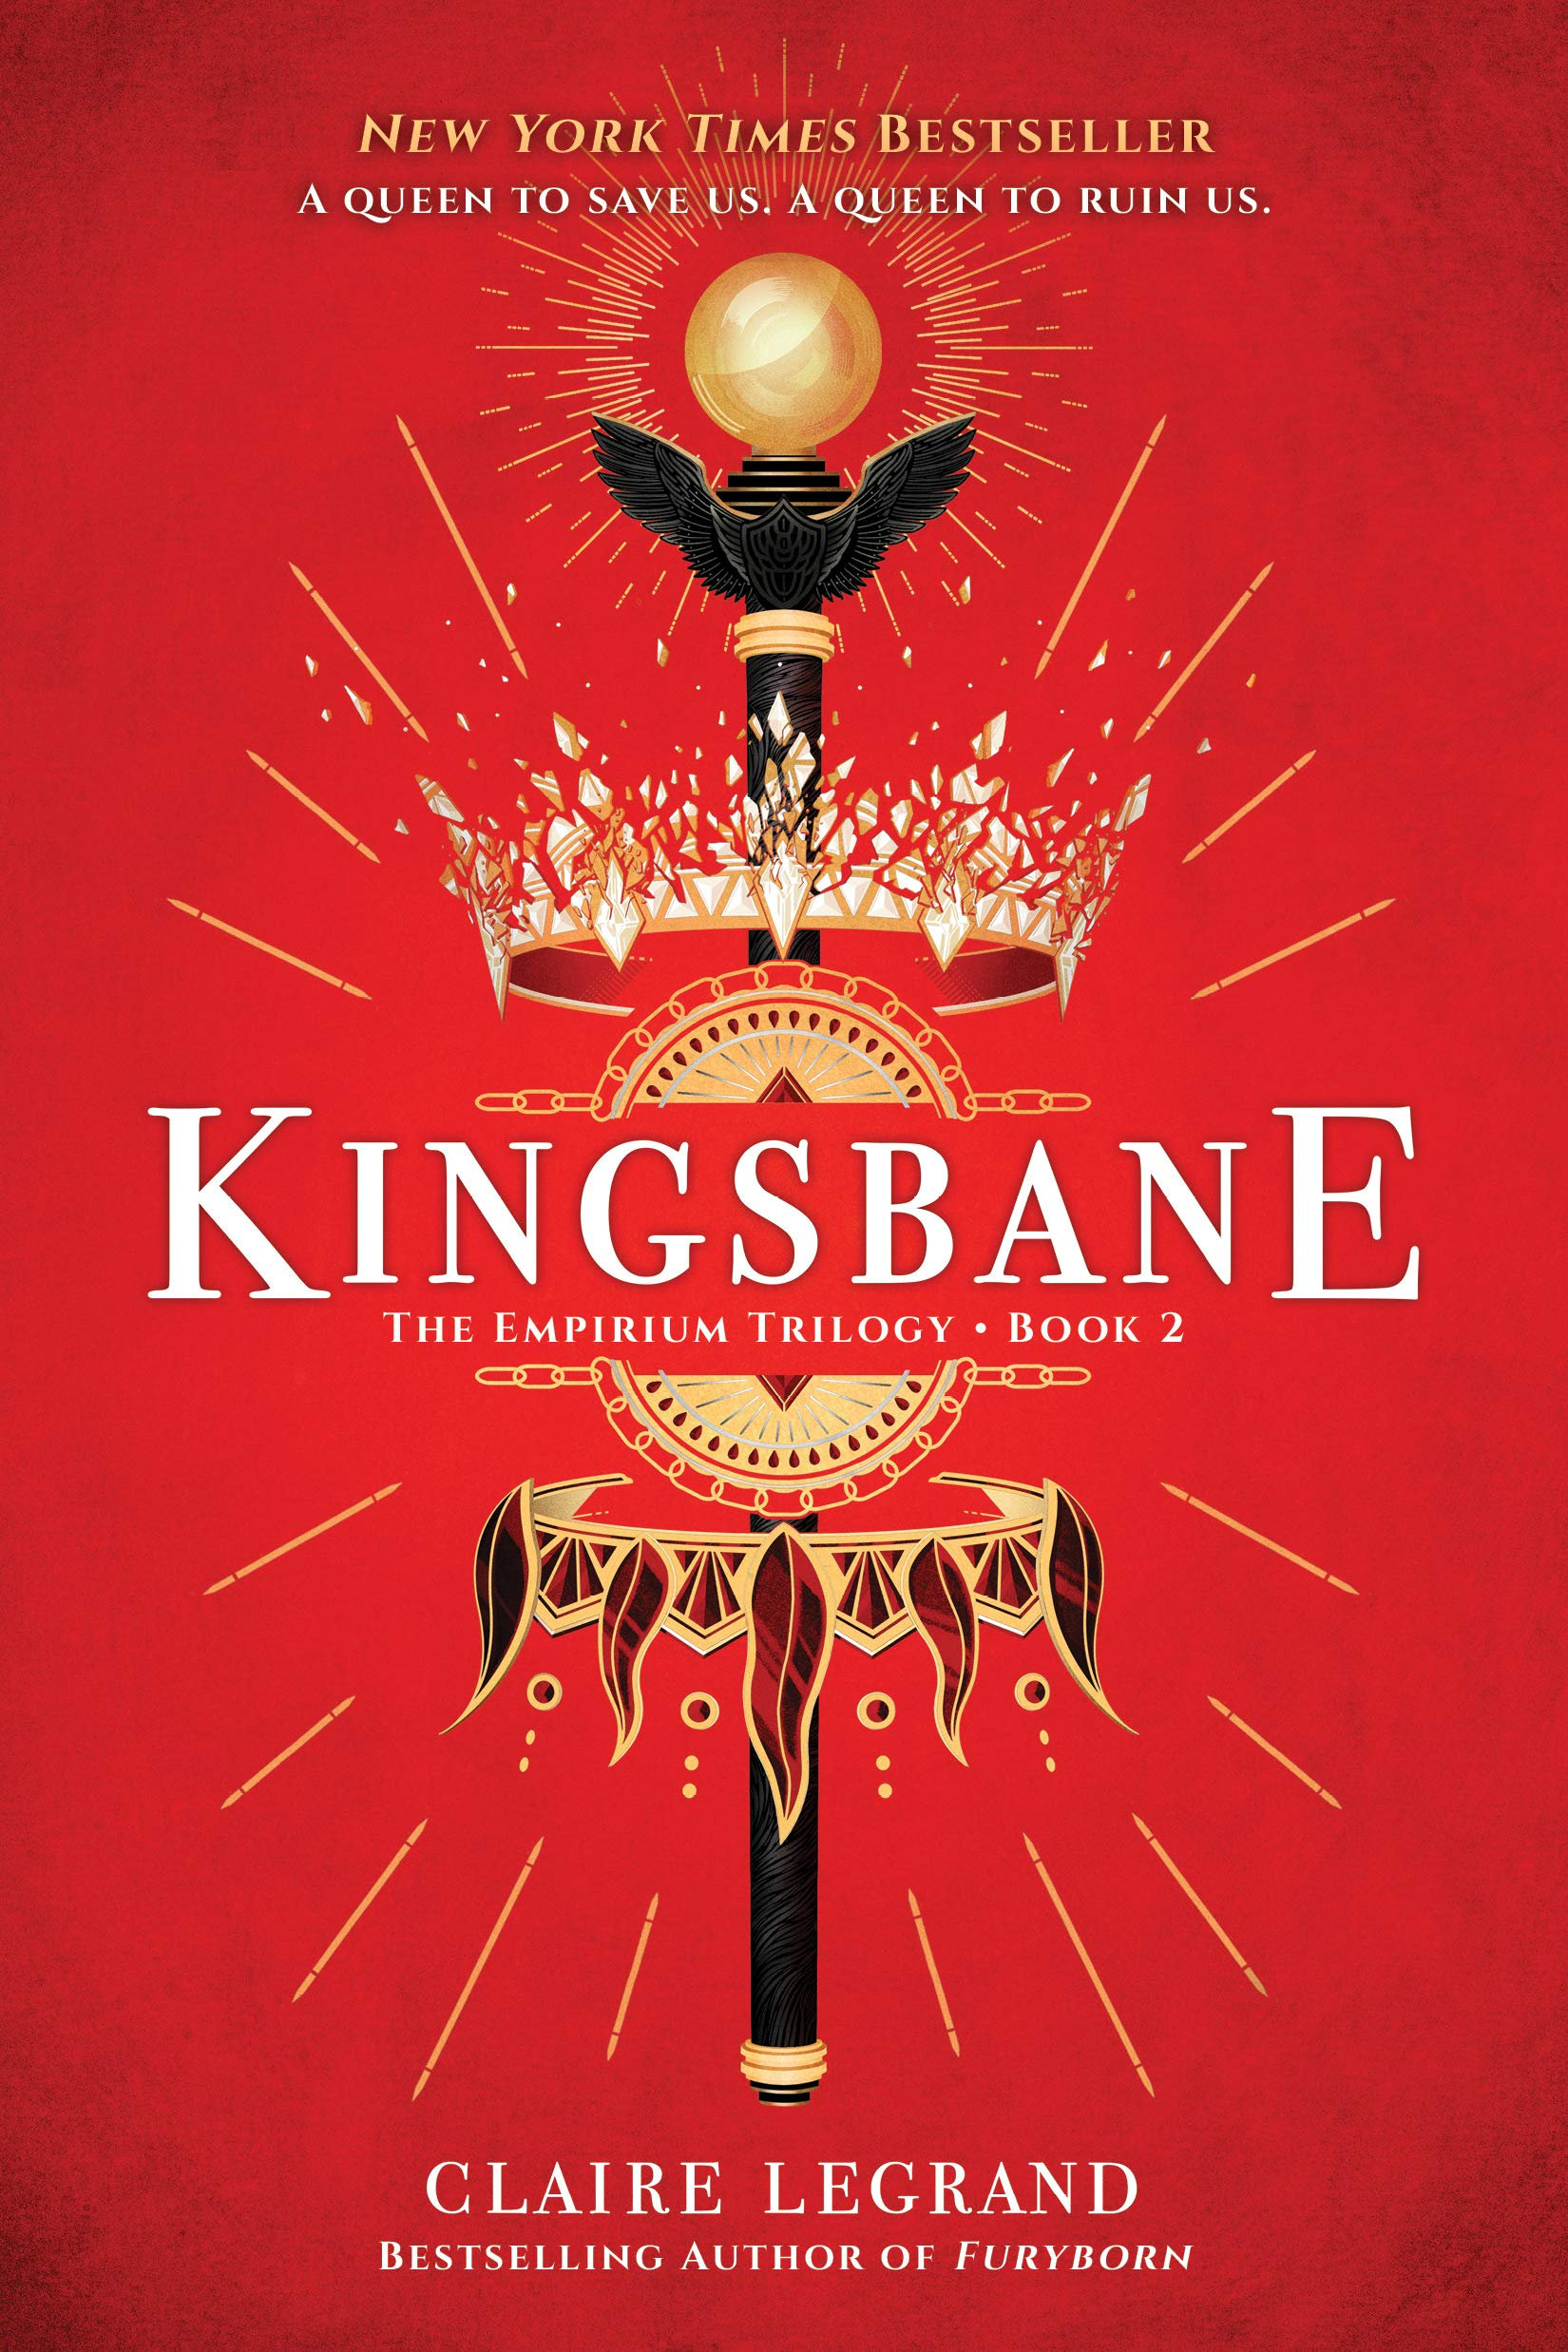 Amazon.com: Kingsbane (The Empirium Trilogy) (0760789291593 ...